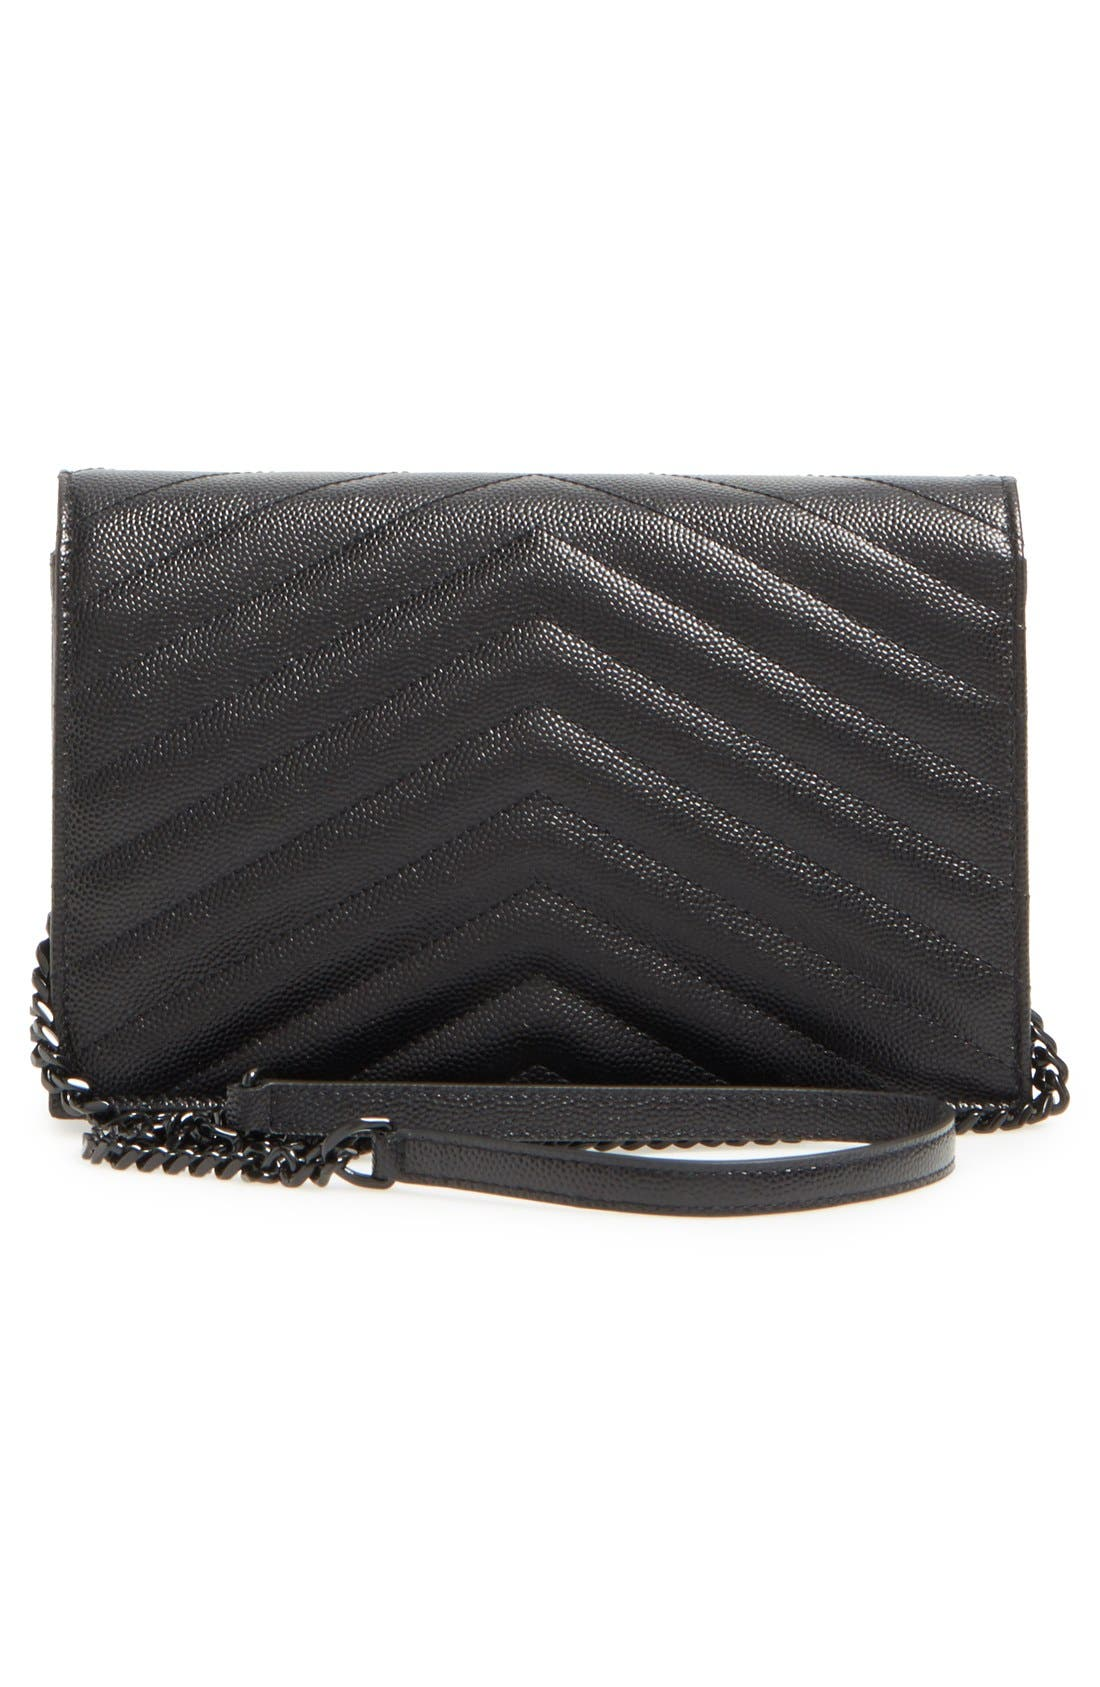 SAINT LAURENT, Quilted Leather Wallet on a Chain, Alternate thumbnail 2, color, NERO